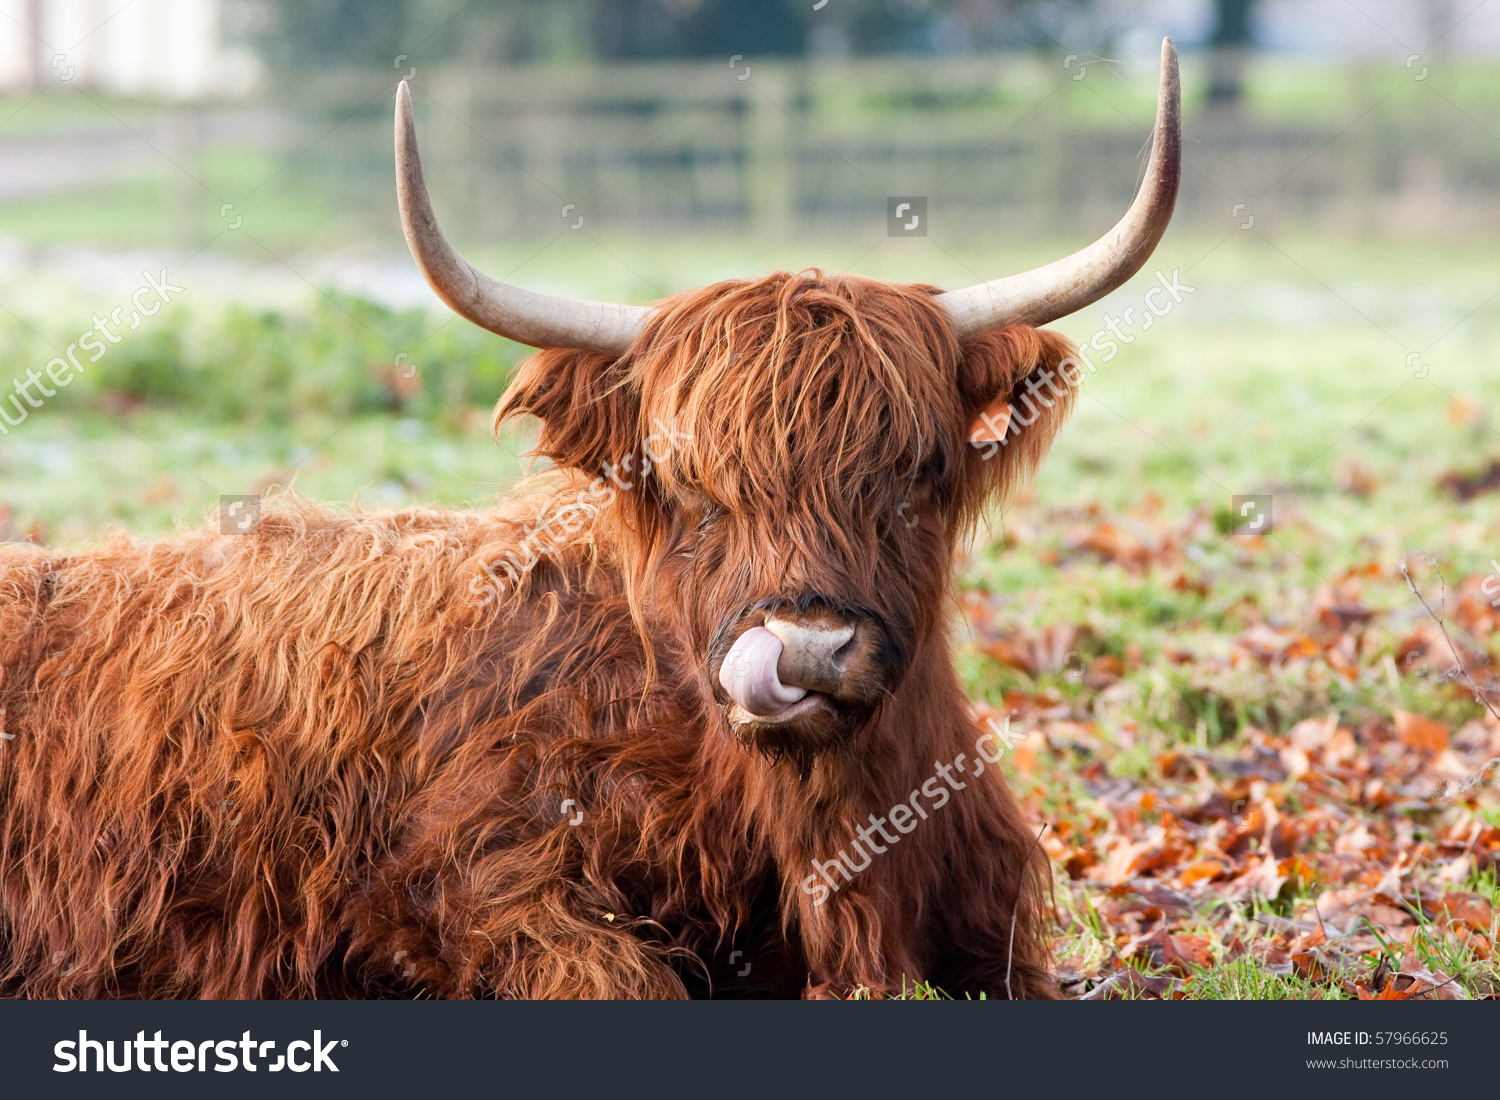 Highland Cow Licking Nose Close Up Stock Photo 57966625 : Shutterstock.